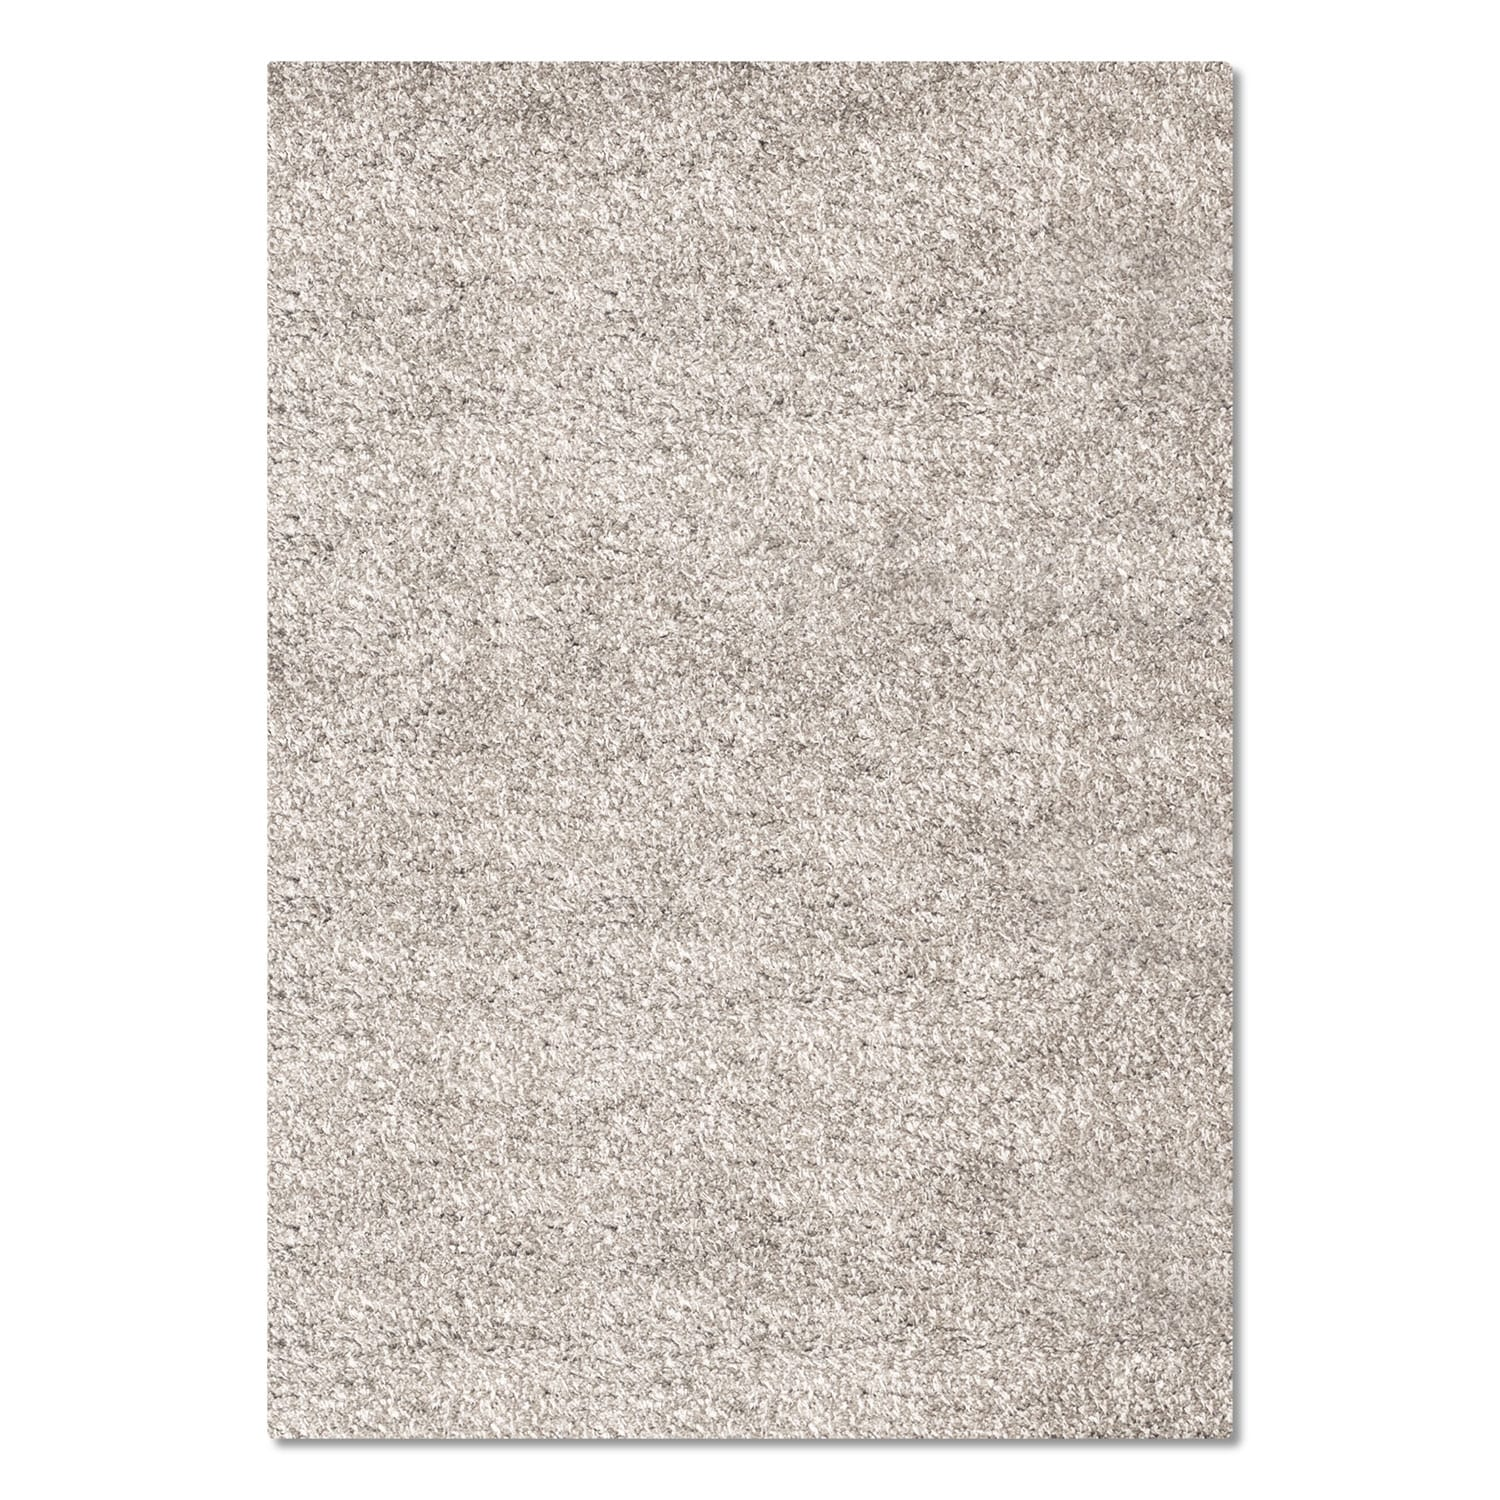 Rugs - Comfort Light Gray Shag Area Rug (8' x 10')